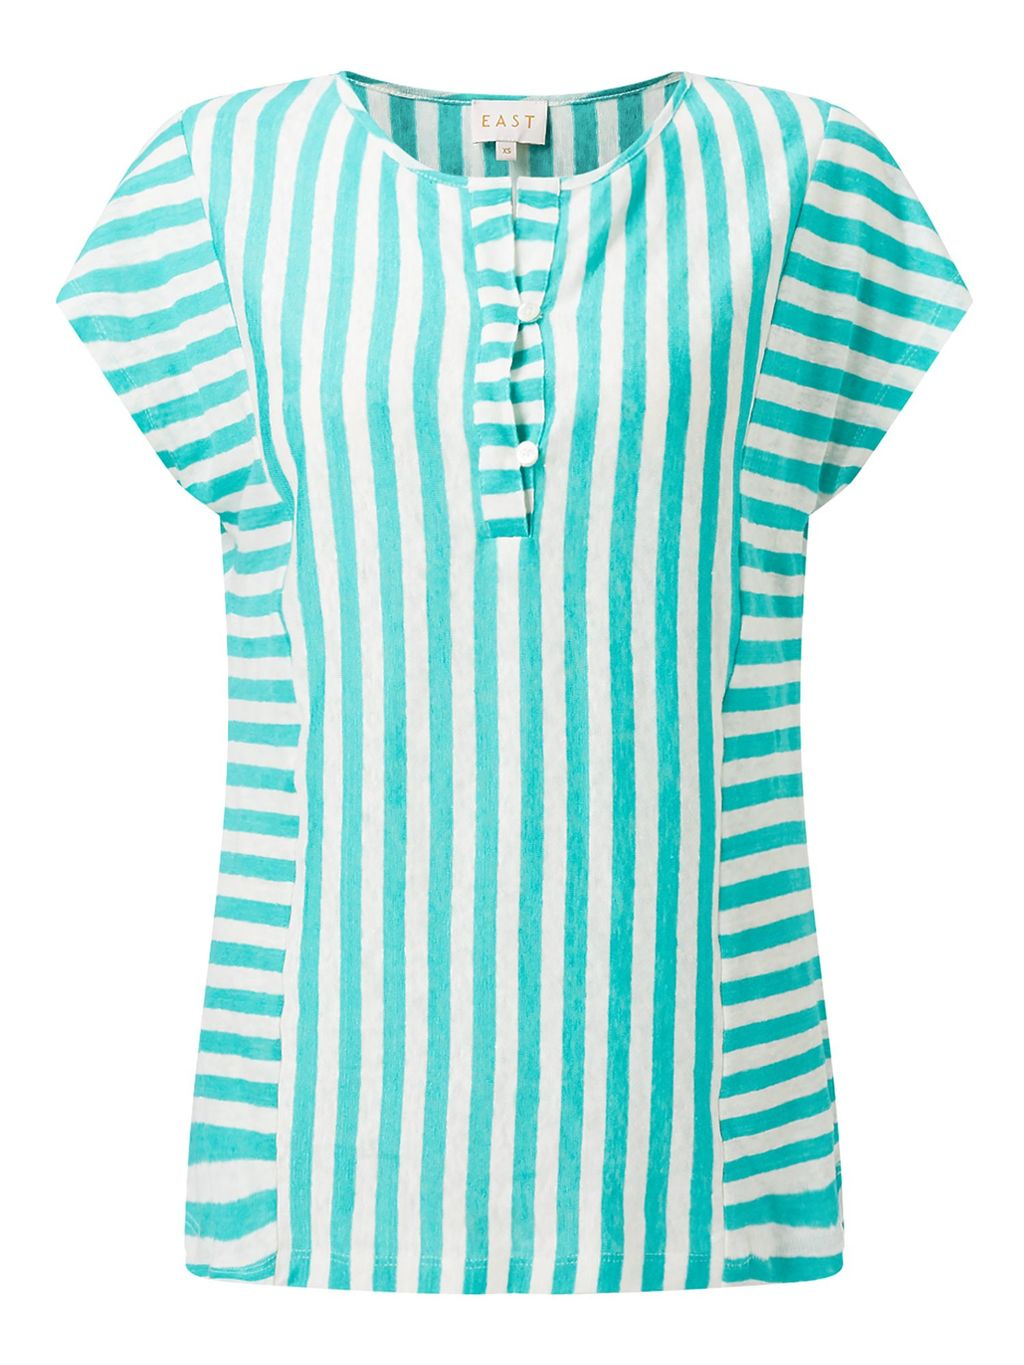 Stripe Jersey Top, Green - pattern: striped; secondary colour: white; predominant colour: mint green; occasions: casual; length: standard; style: top; fibres: linen - 100%; fit: body skimming; neckline: crew; sleeve length: short sleeve; sleeve style: standard; texture group: linen; pattern type: fabric; pattern size: standard; multicoloured: multicoloured; season: s/s 2016; wardrobe: highlight